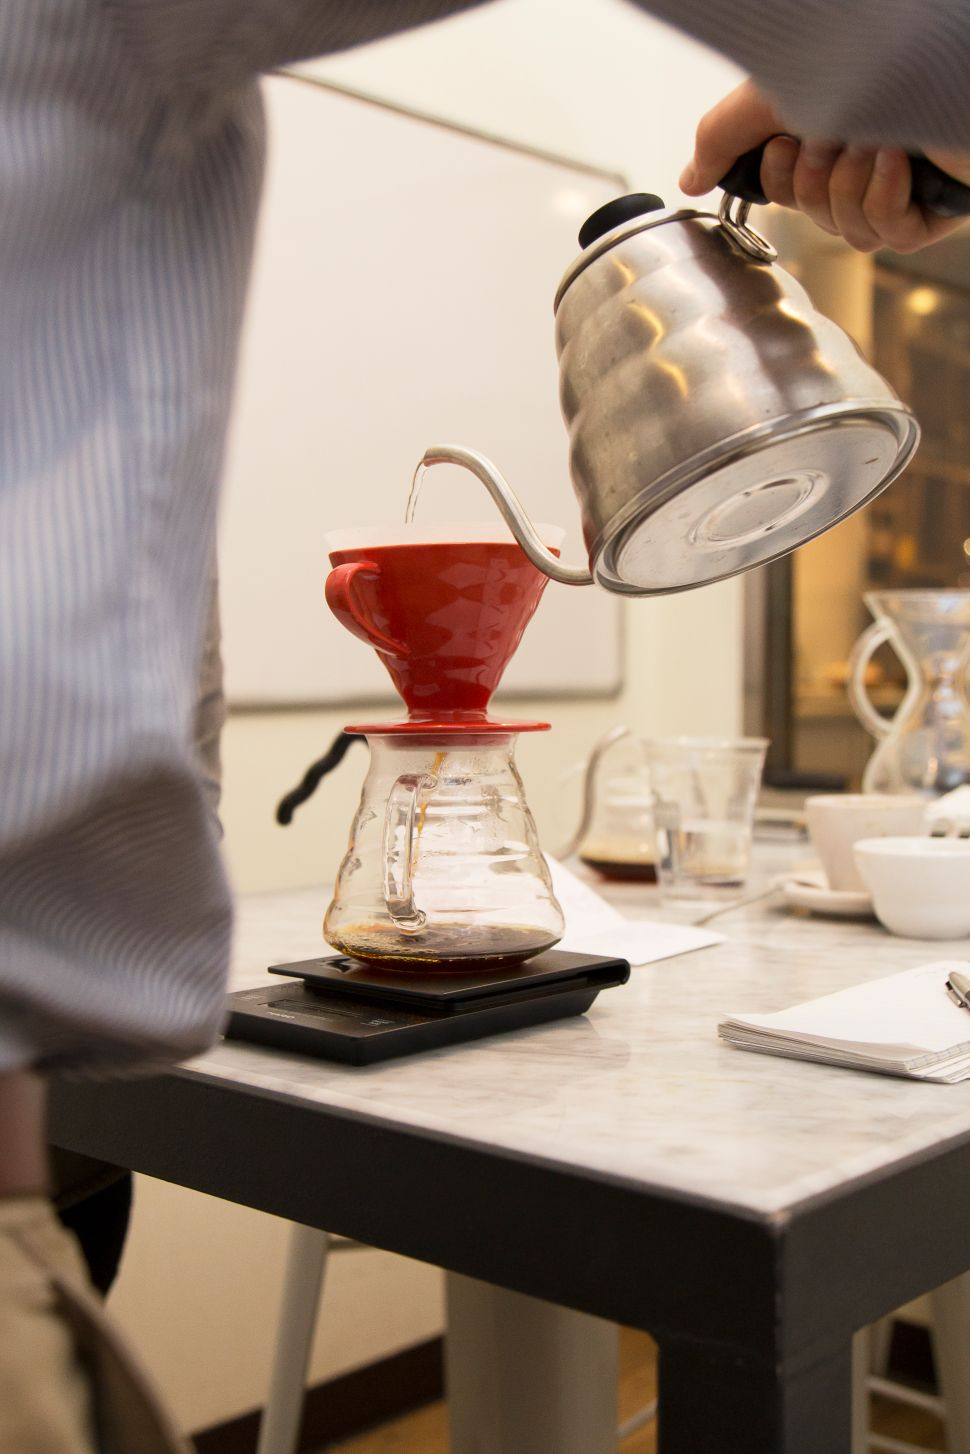 A Course in Home Brewing Shows That a Simple Cup of Coffee Is Anything But